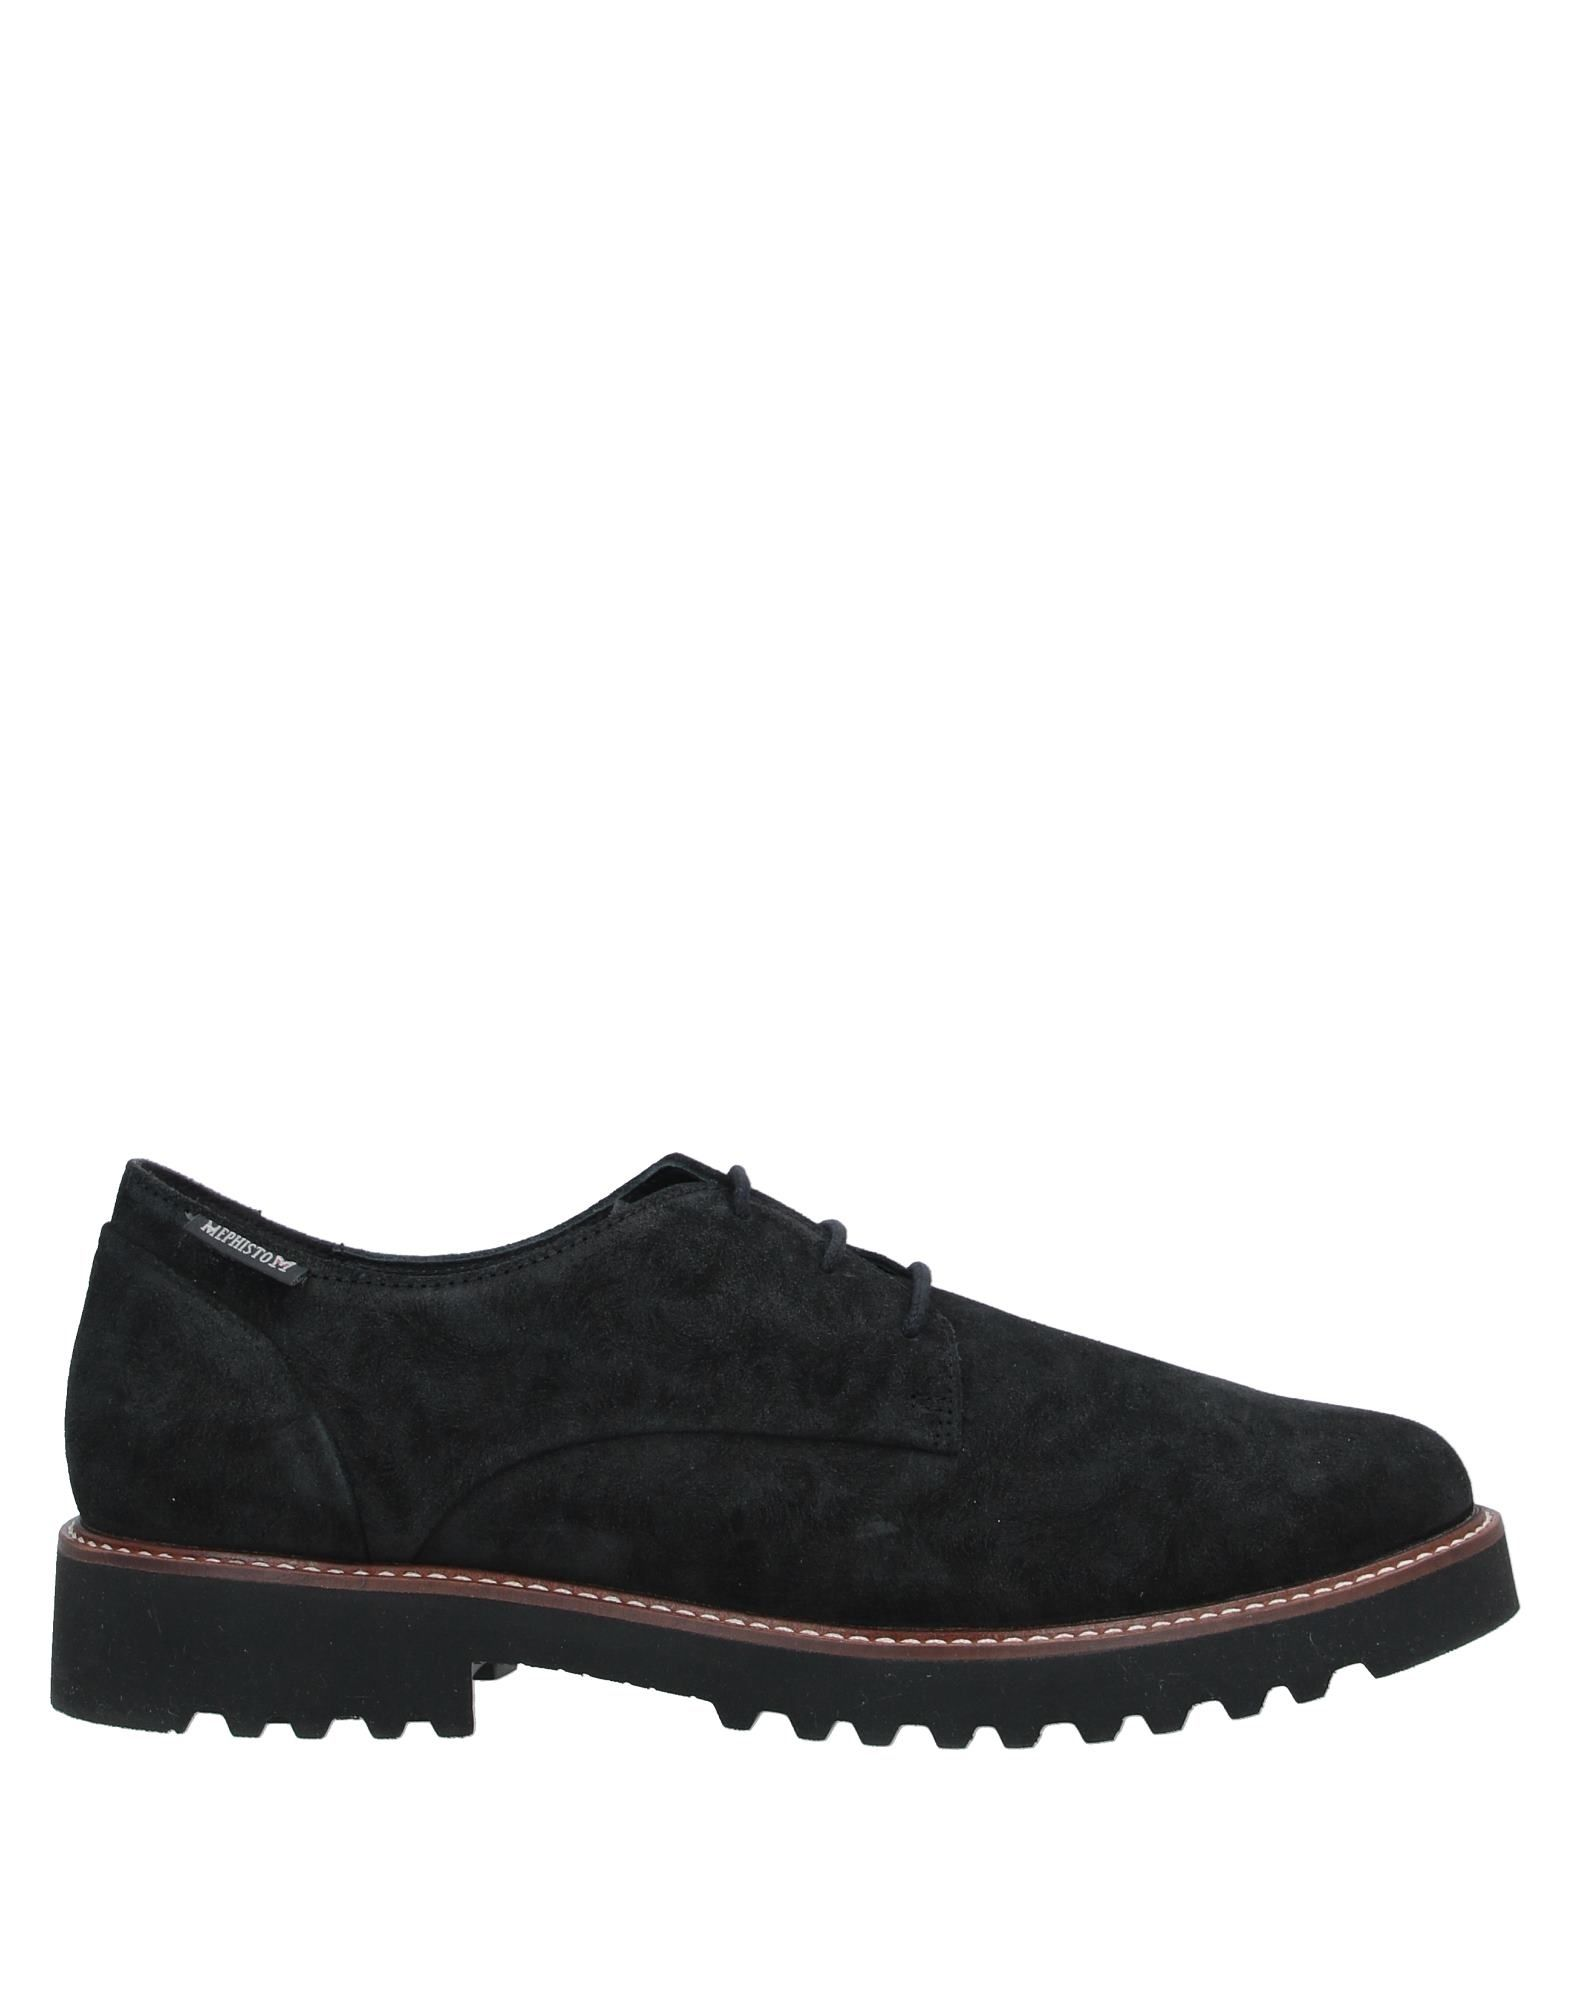 MEPHISTO Lace-up shoes. leather, suede effect, no appliqués, solid color, round toeline, flat, leather lining, rubber cleated sole, contains non-textile parts of animal origin. Soft Leather